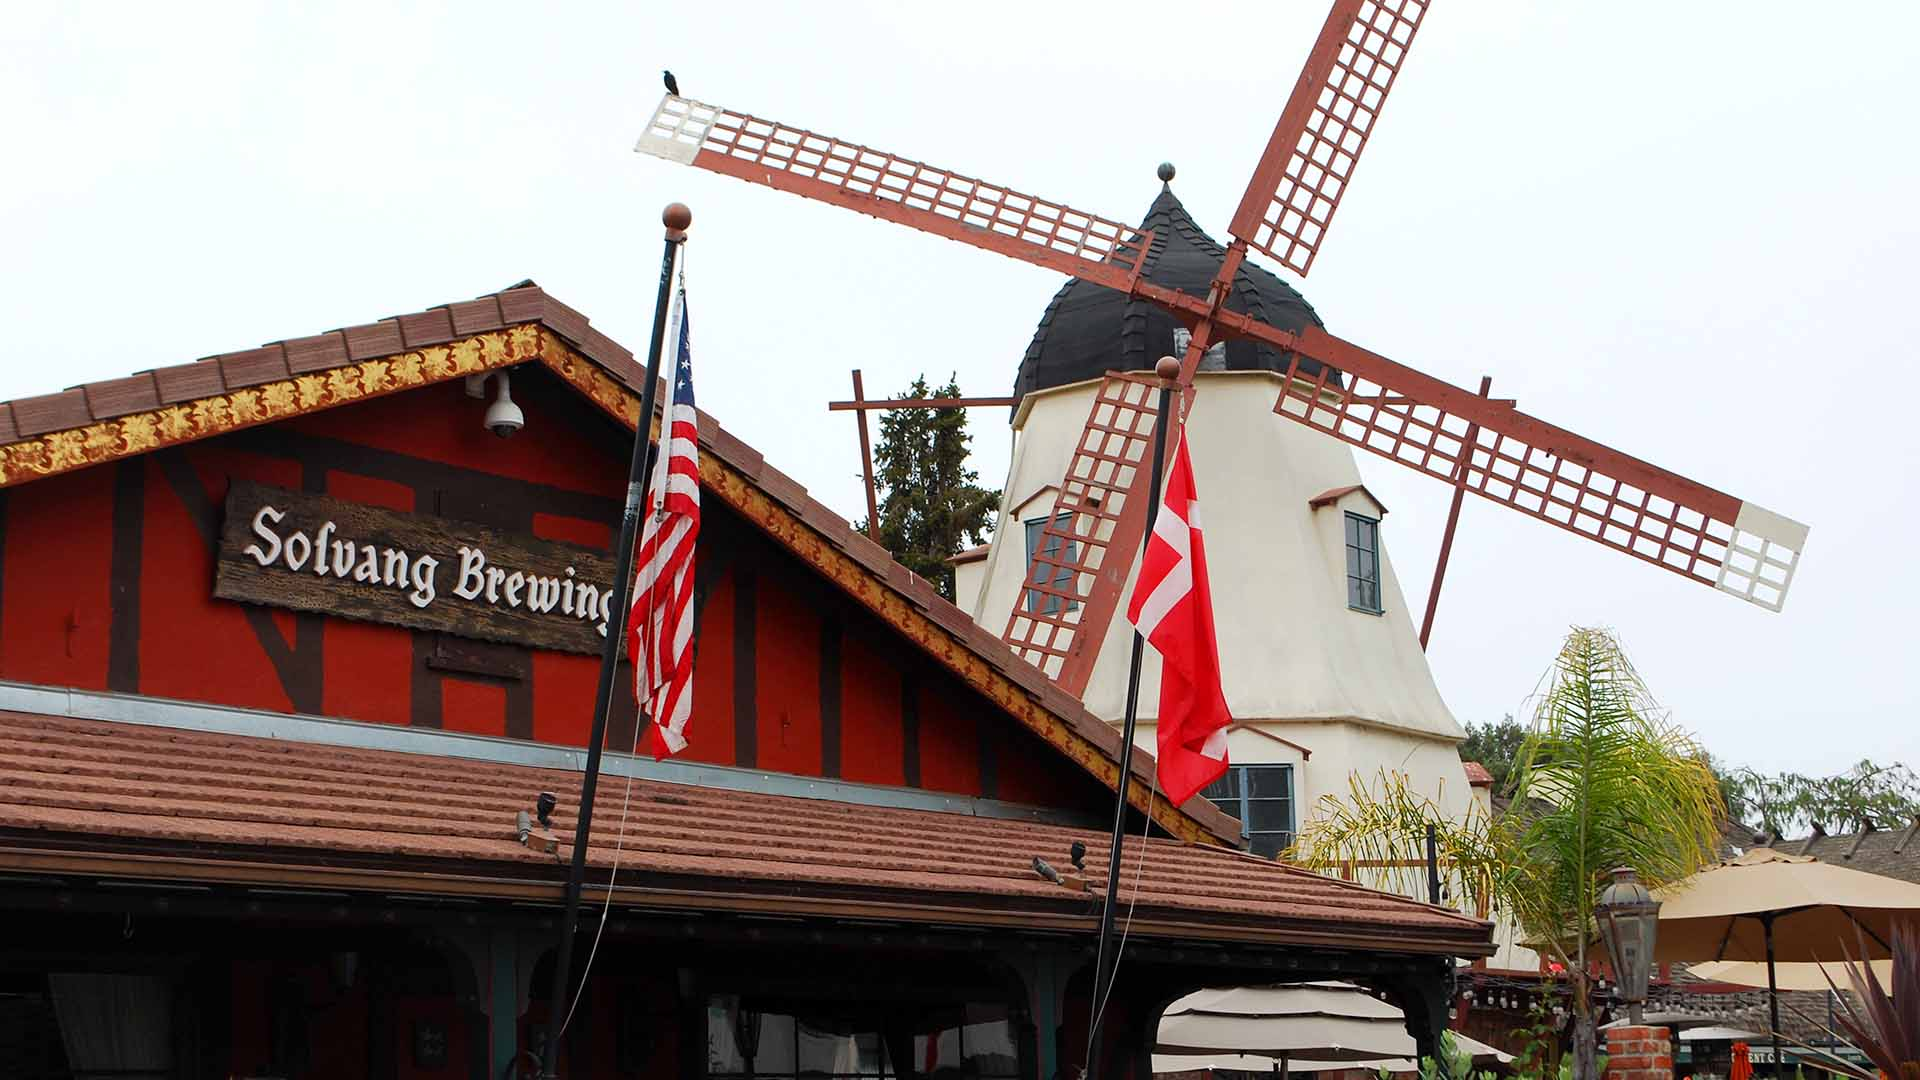 The windmill at Solvang Brewing Company is just part of the town's Danish charm.